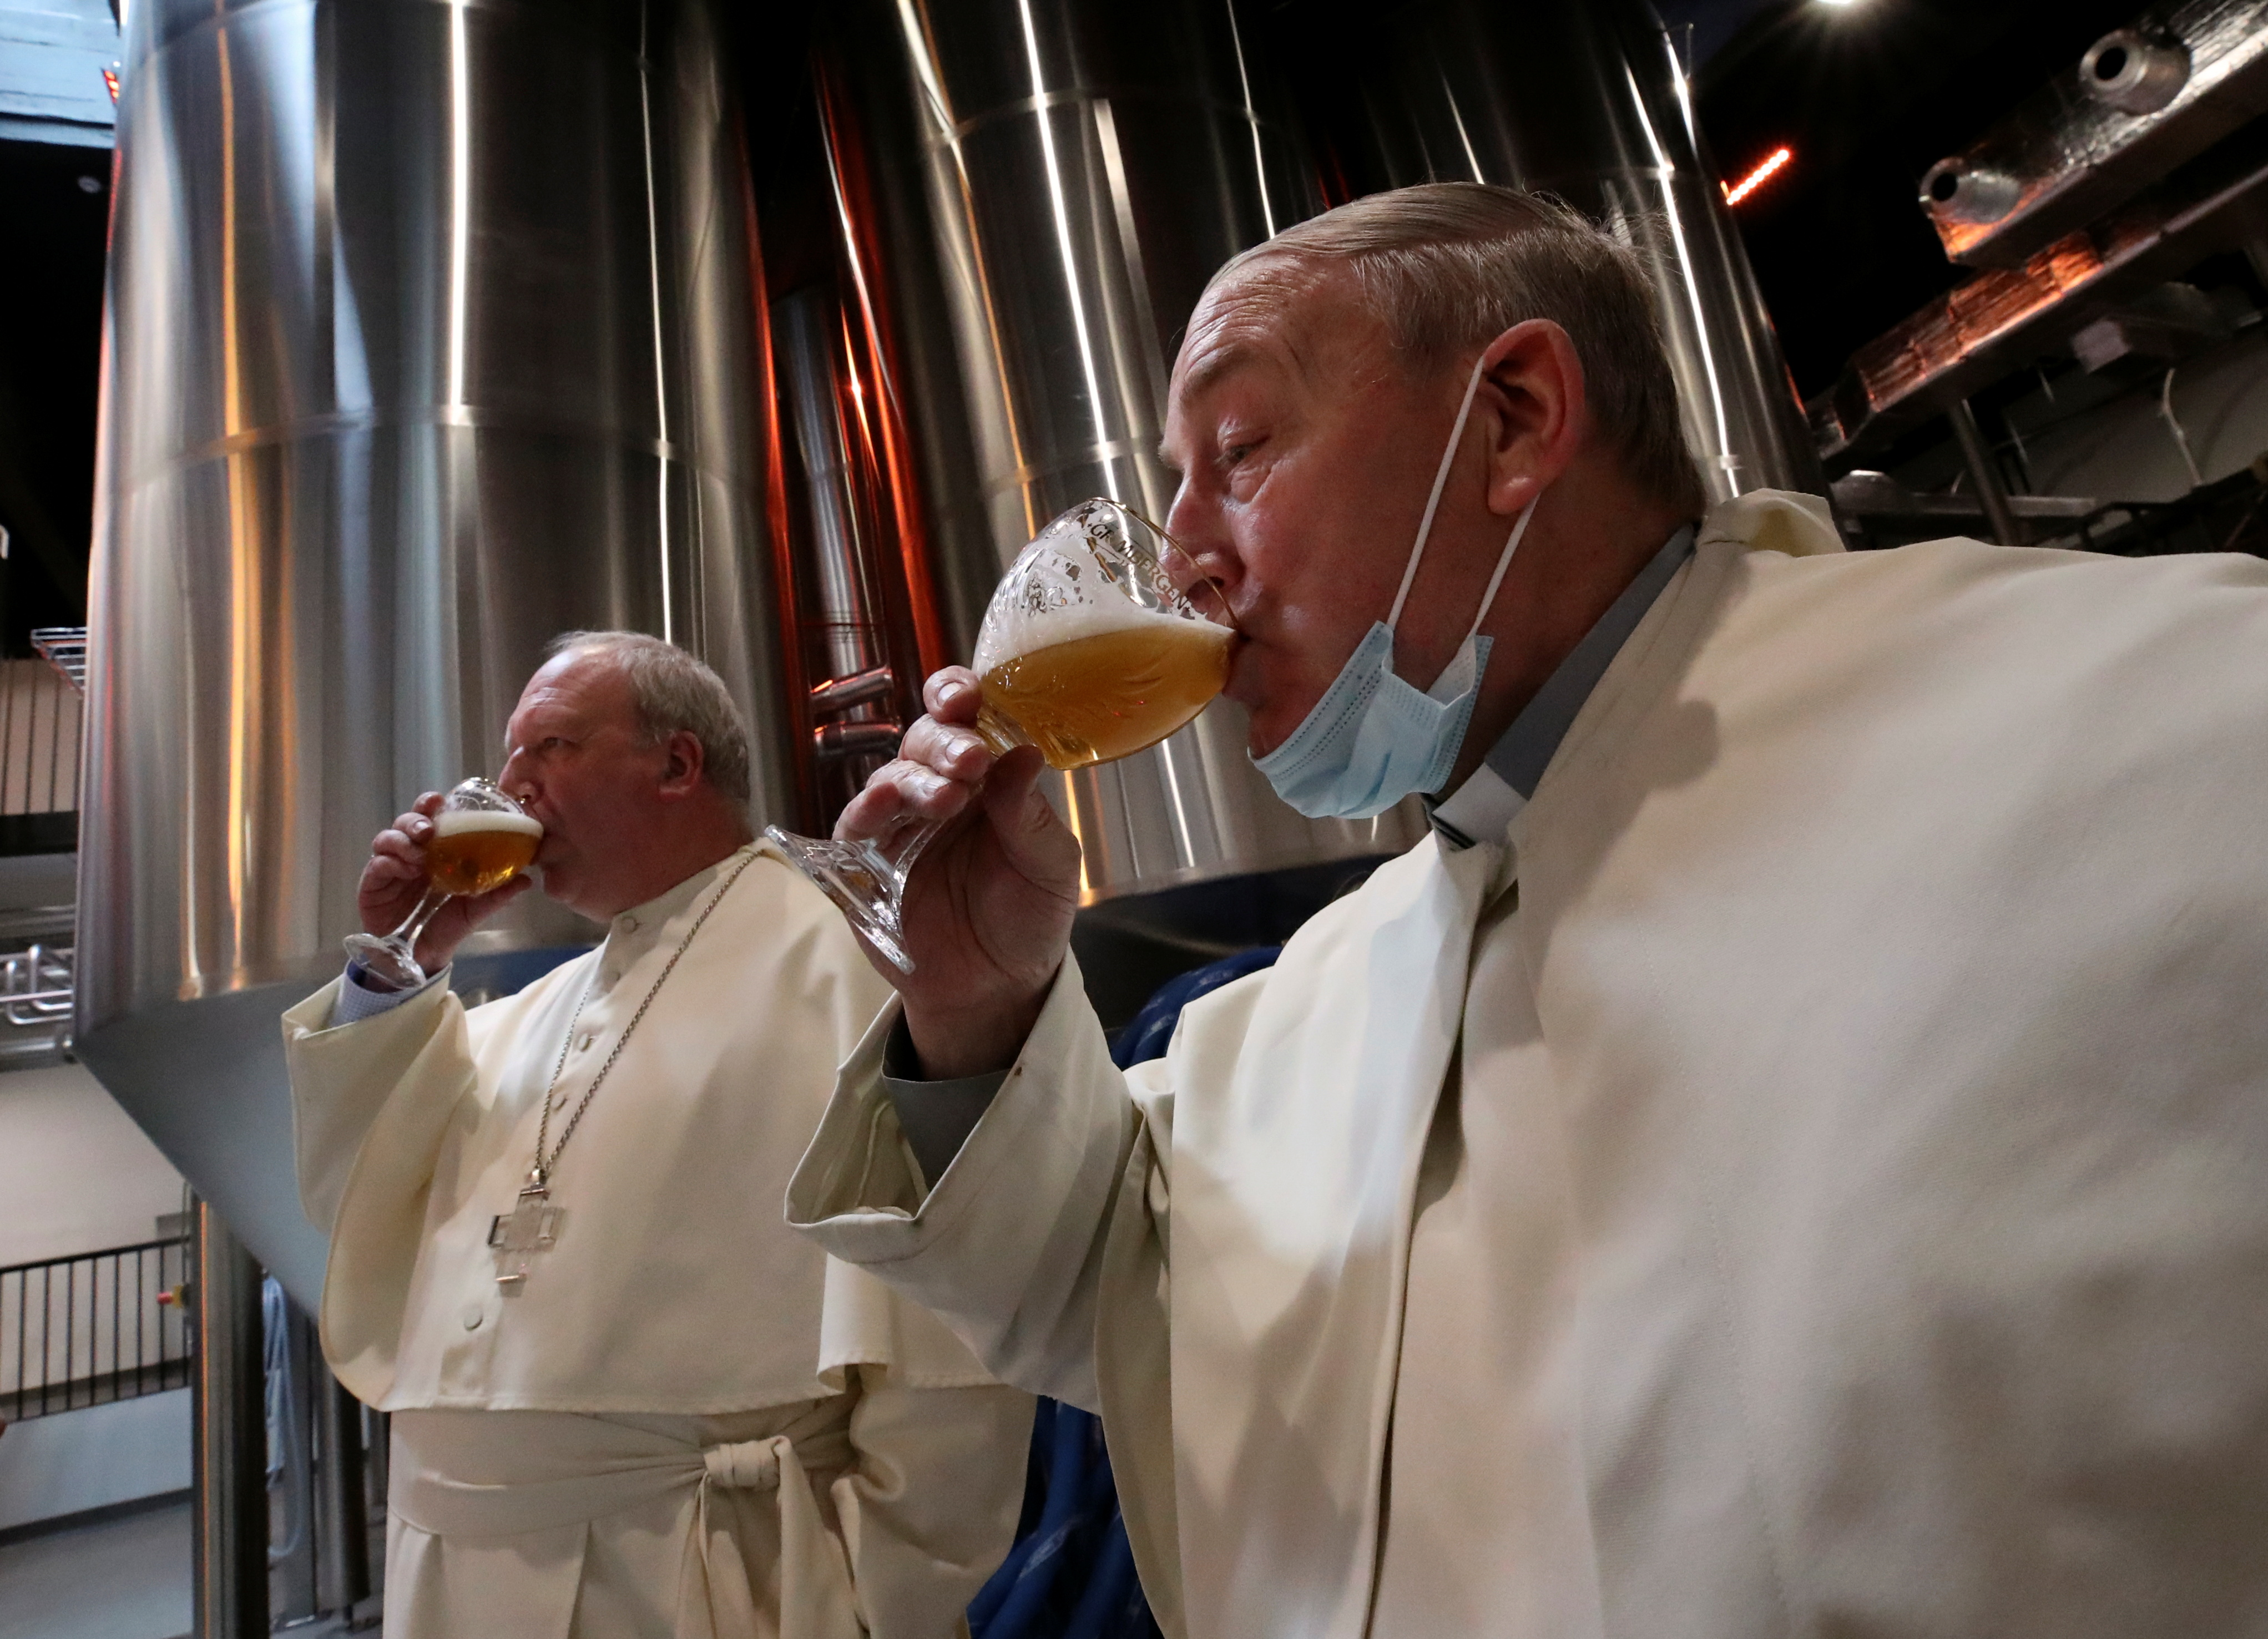 Abbot Erik De Sutter and father Stefaan Verstraeten taste beer after blessing beer tanks at the Belgian Abbey of Grimbergen, which returns to brewing after a break of more than 200 years with a new microbrewery in Grimbergen, Belgium May 26, 2021. REUTERS/Yves Herman